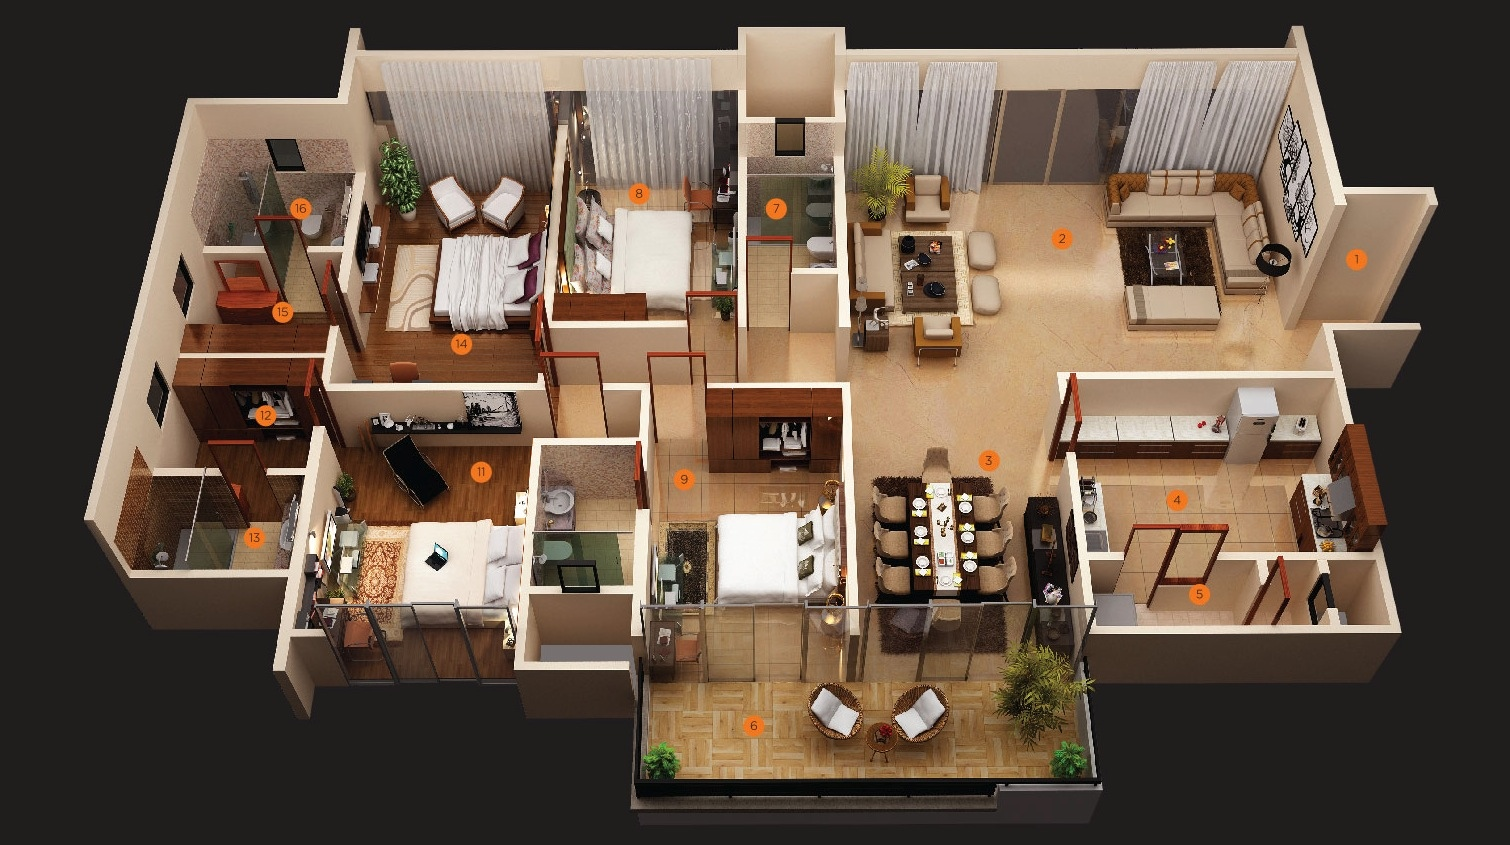 4 Bedroom partment/House Plans - ^